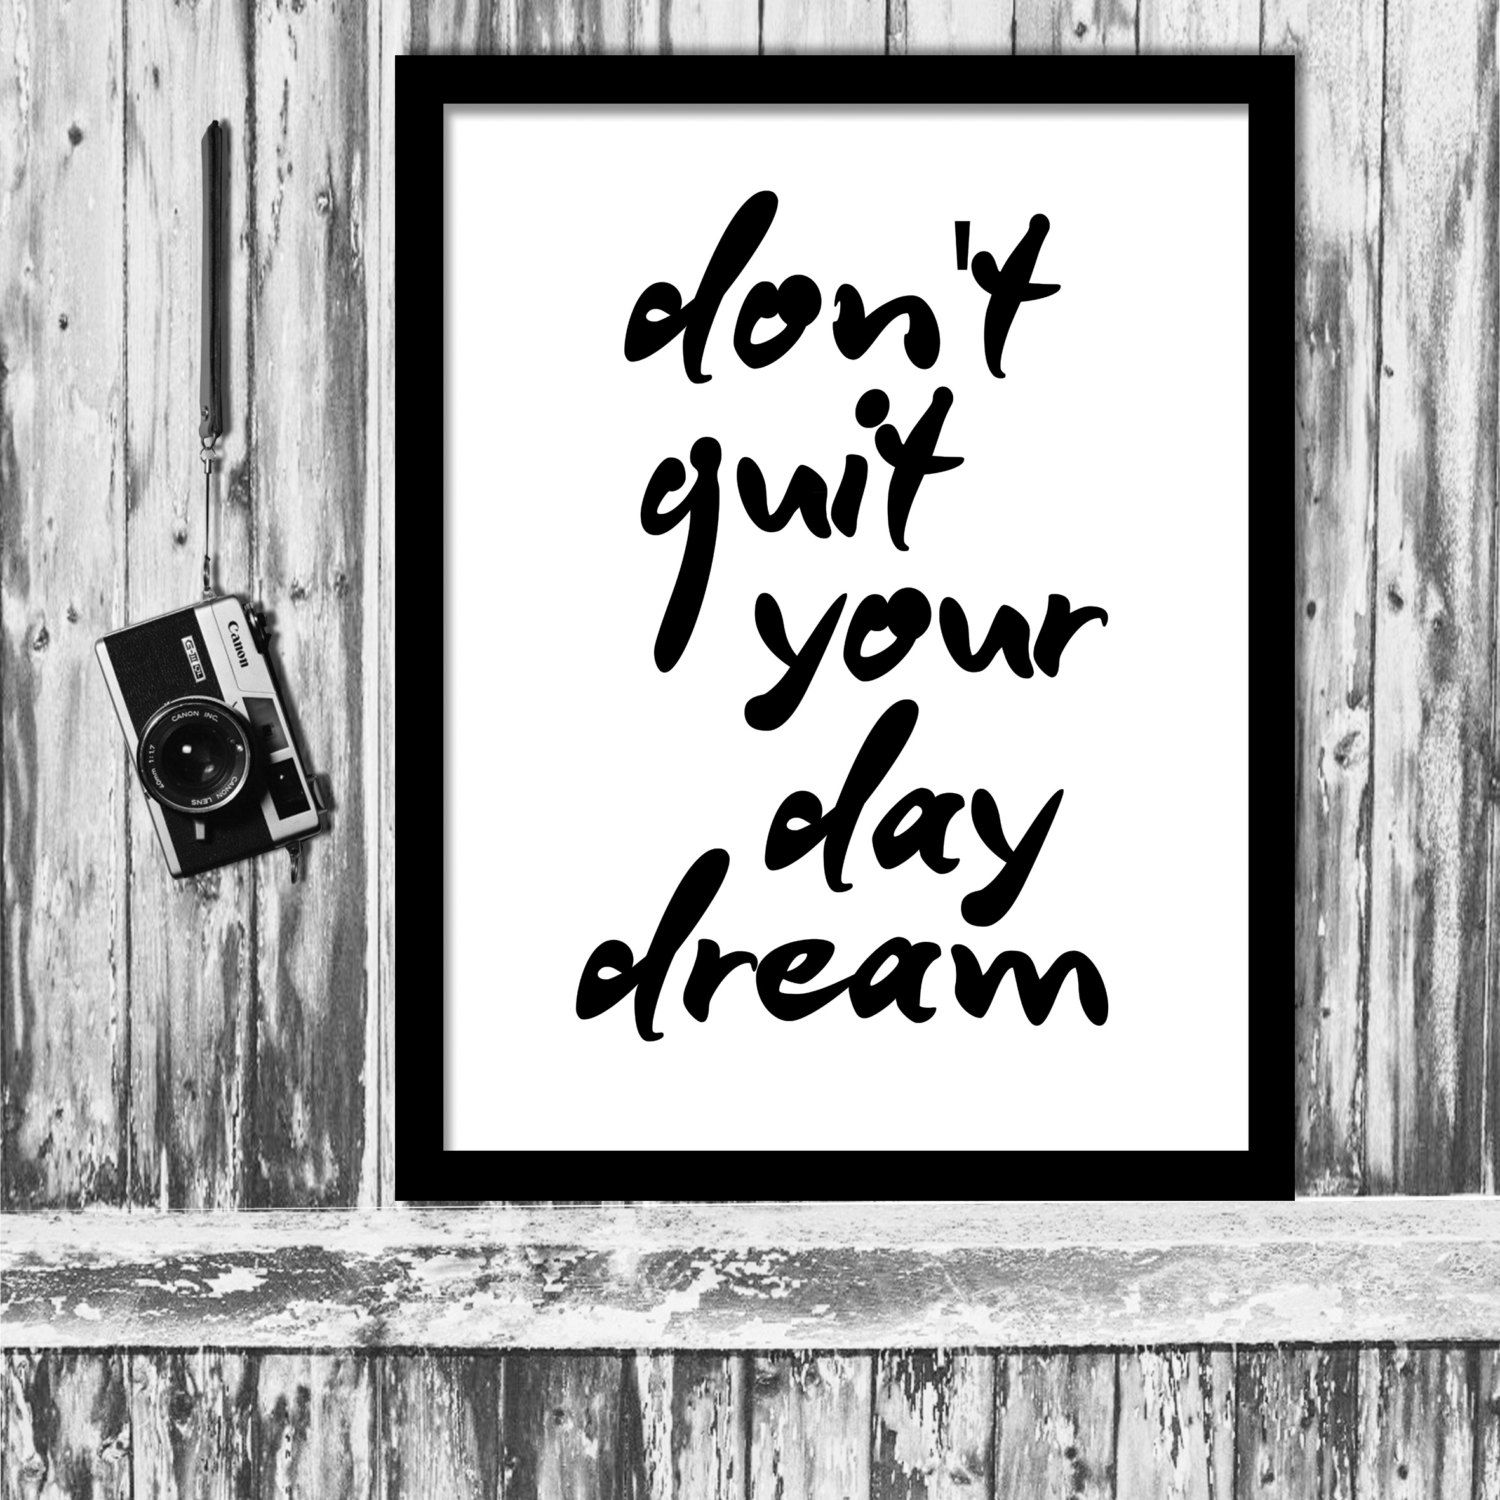 Inspirational quote donut quit your day dream motivational poster